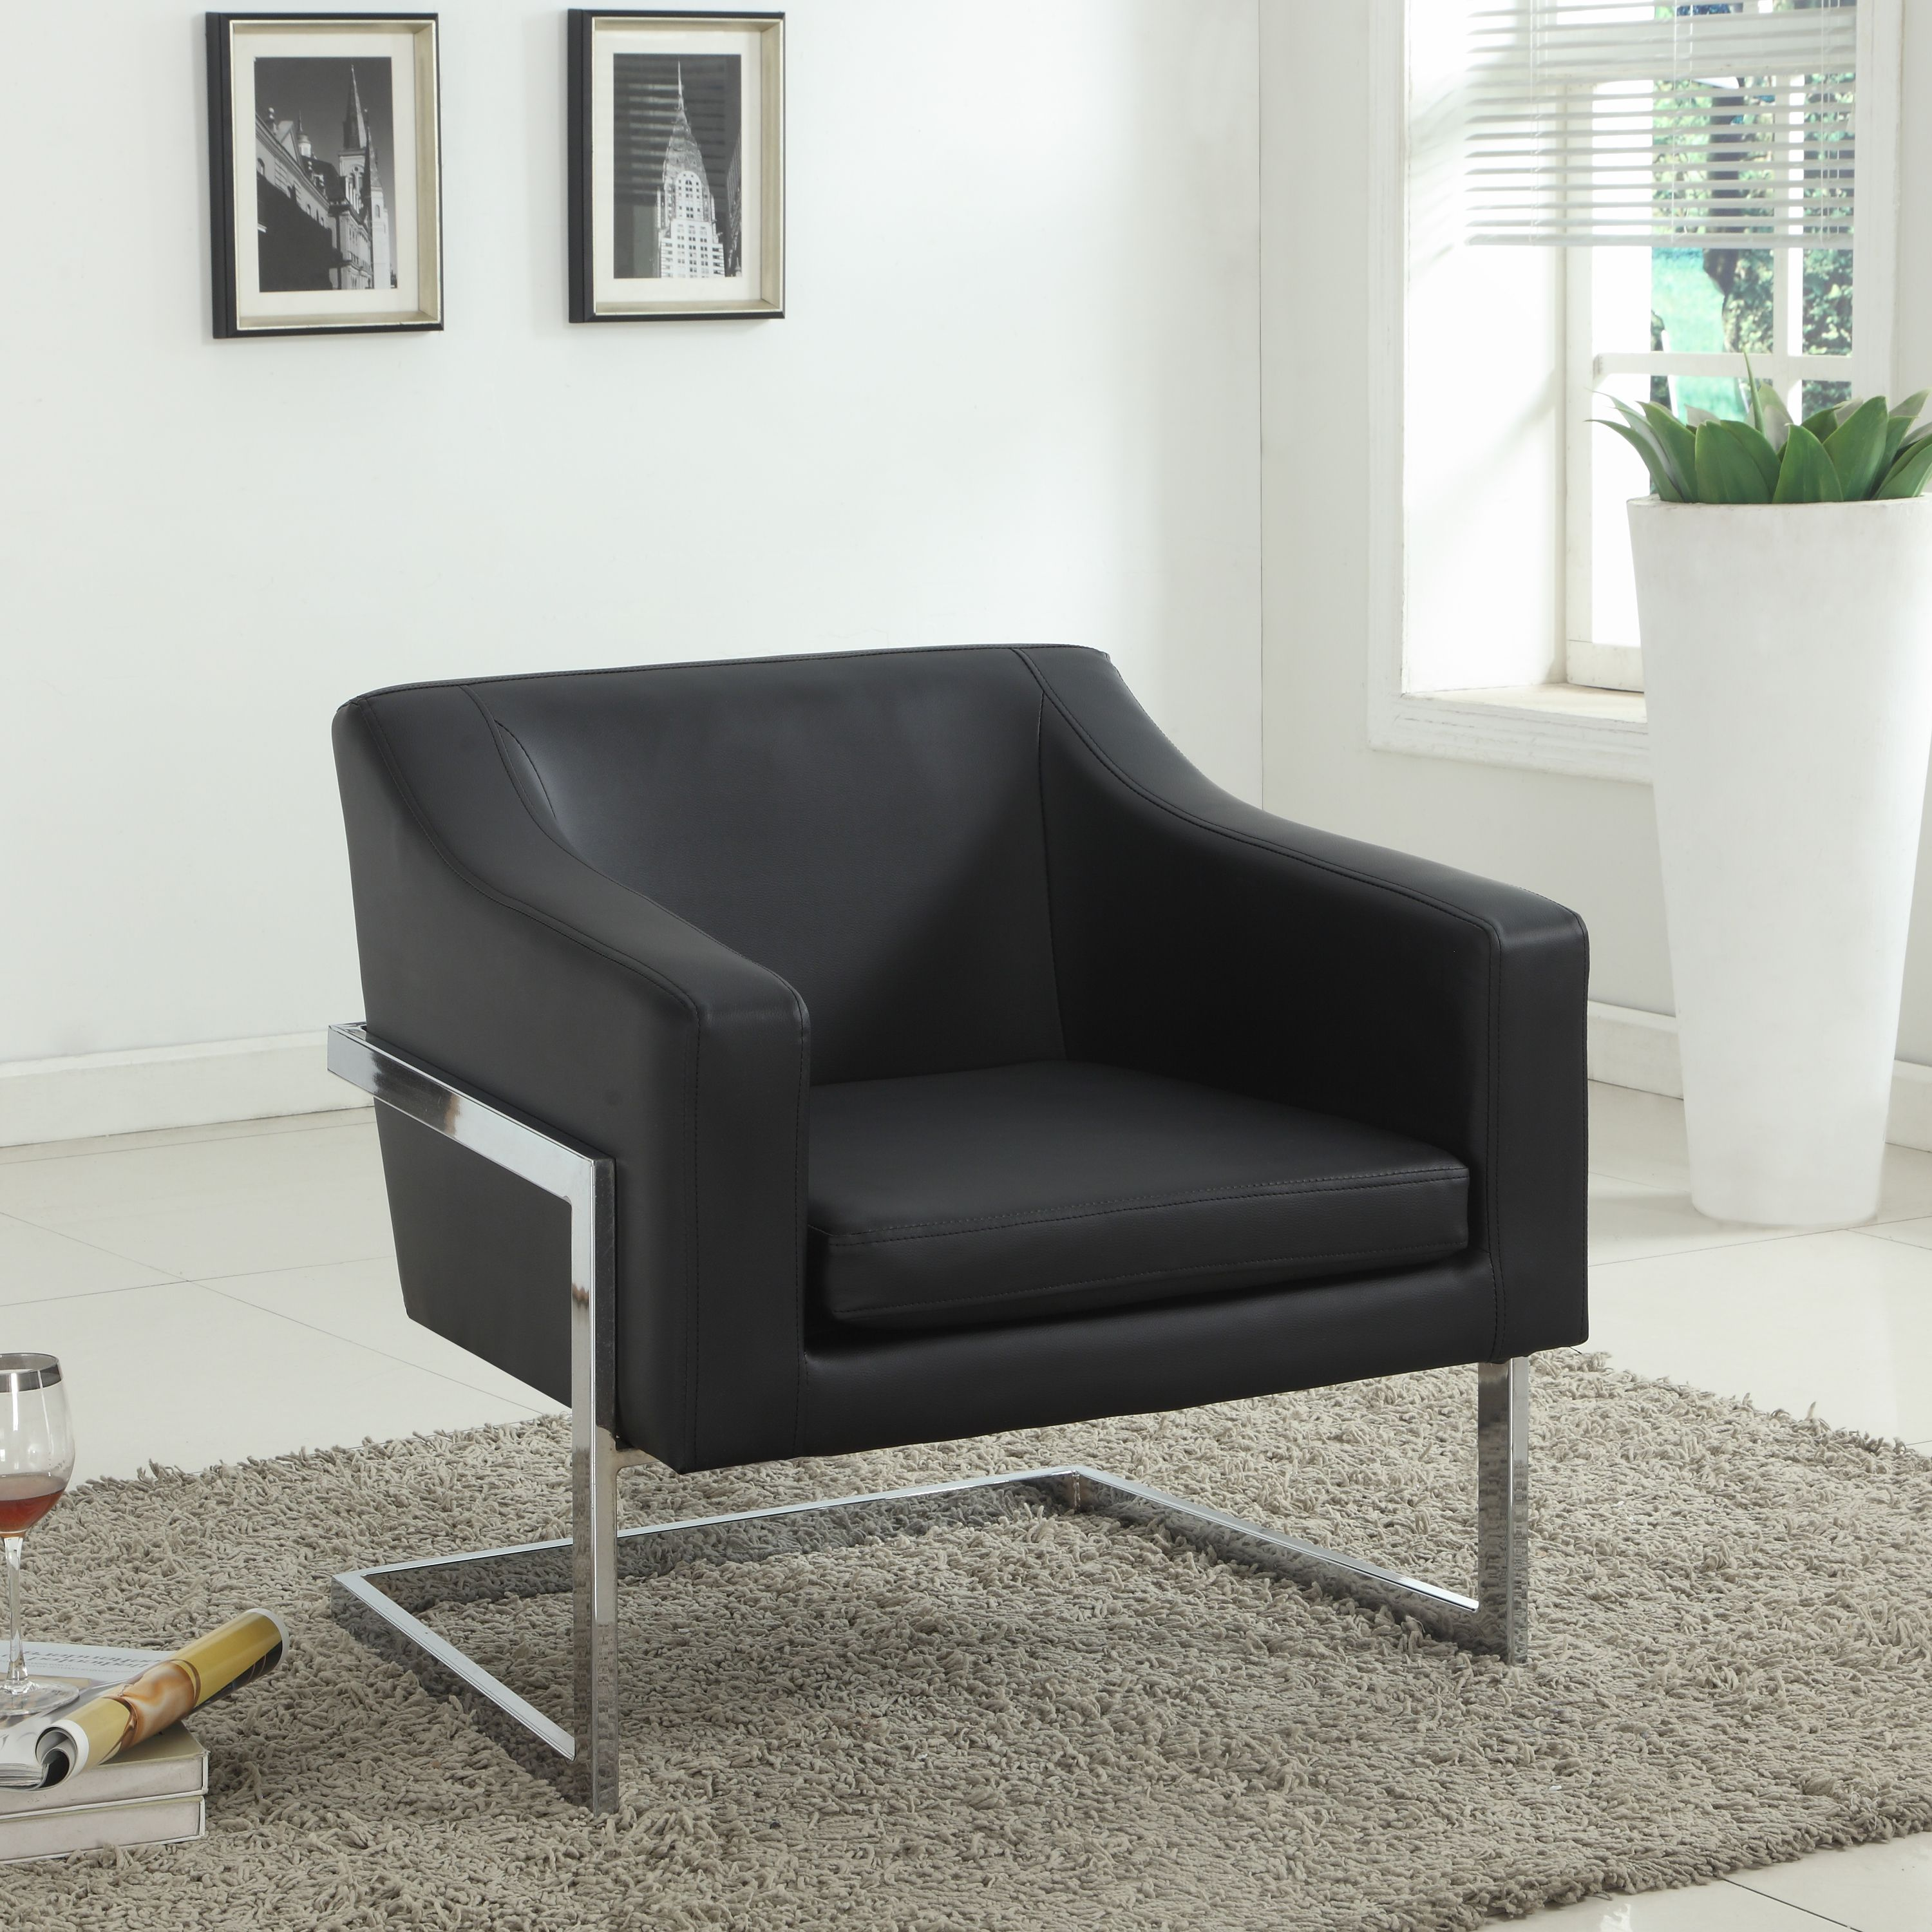 Best Master Furniture's Modern Club Chair, Multiple Colors Available by Best Master Furniture